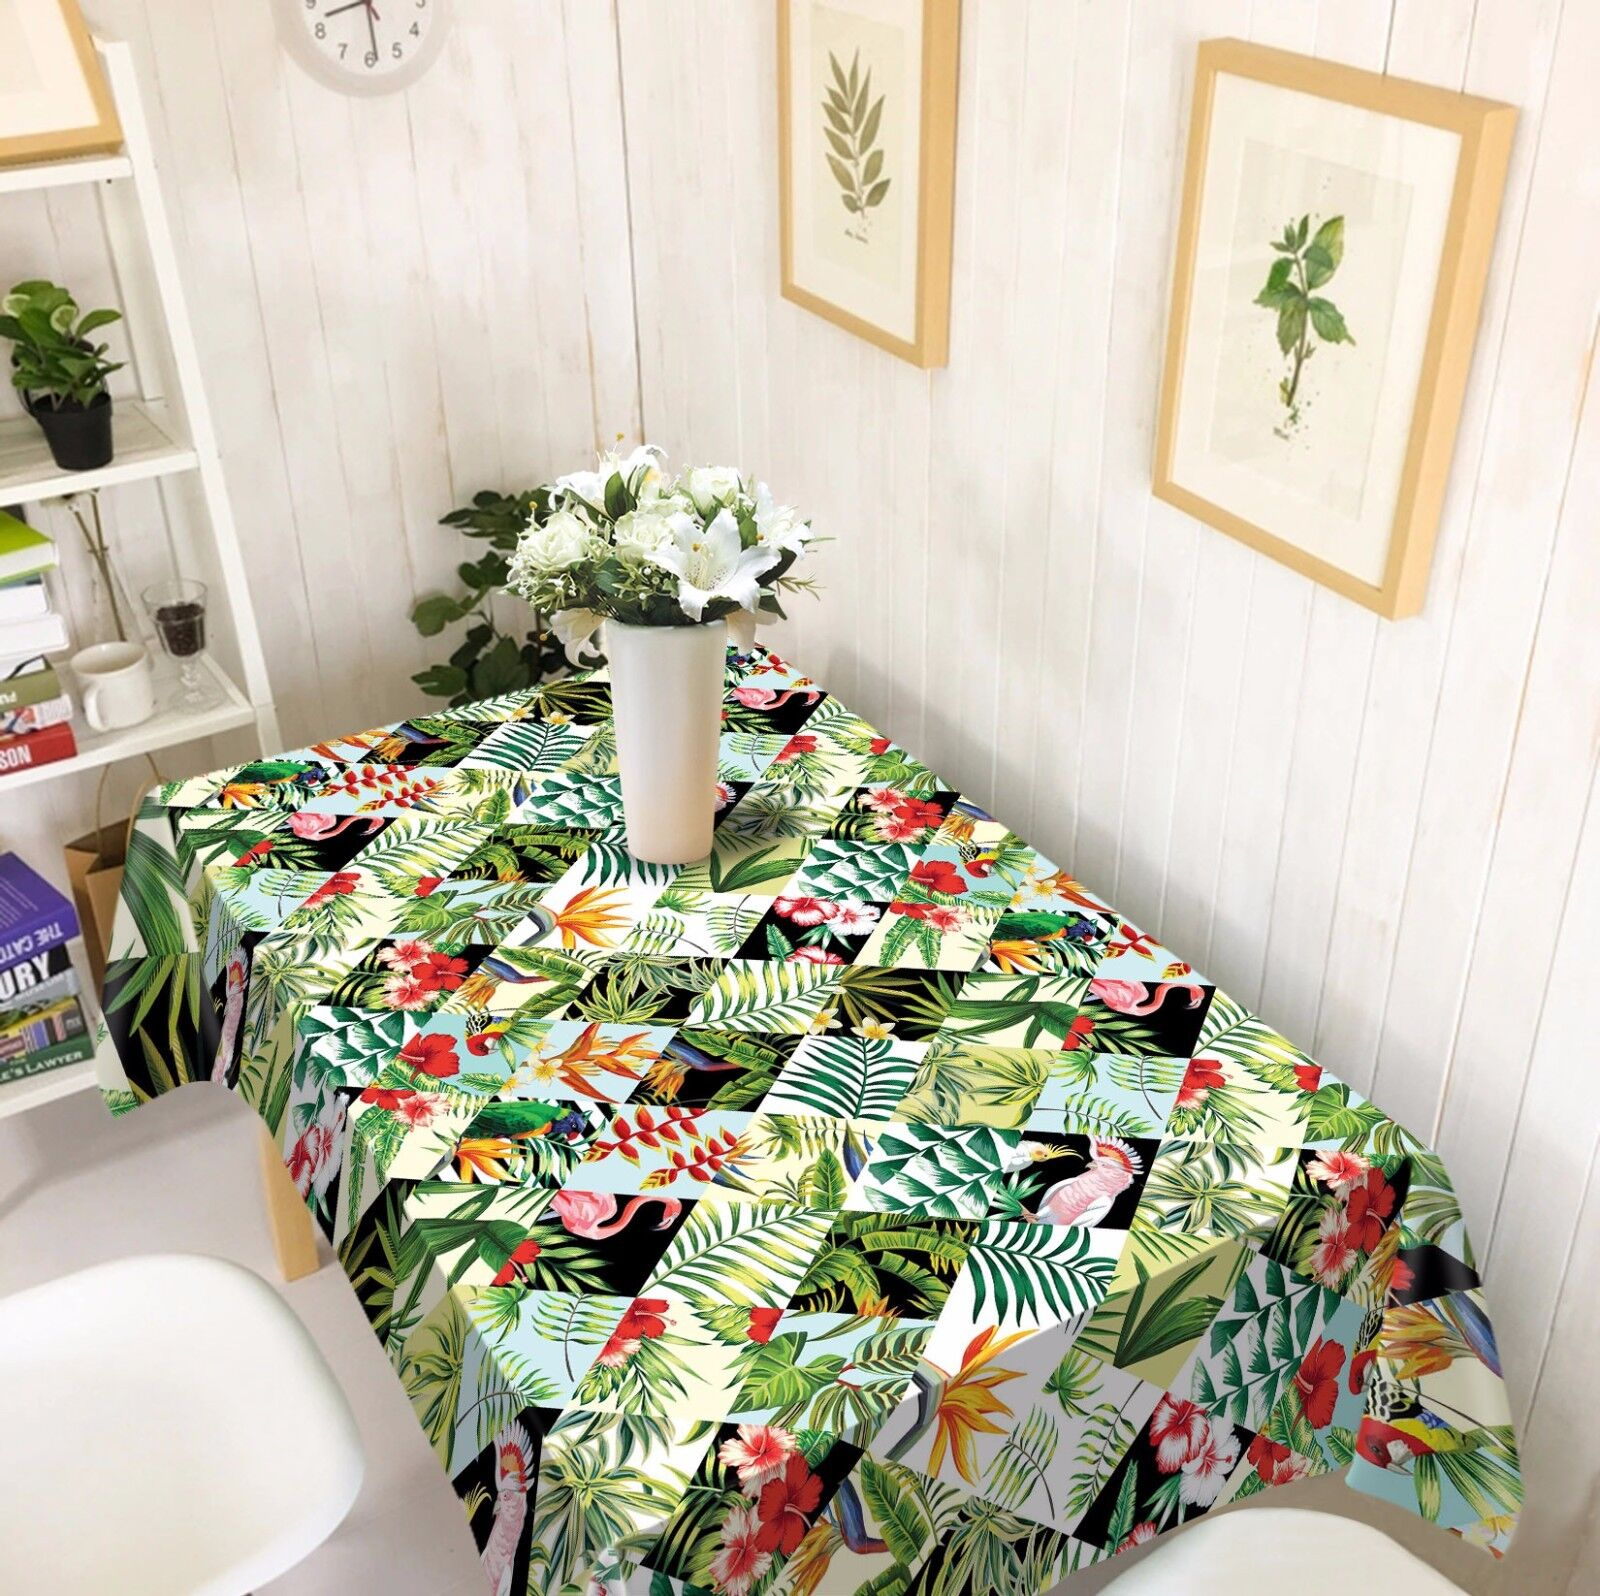 3D Leaves 44 Tablecloth Table Cover Cloth Birthday Party AJ WALLPAPER UK Lemon